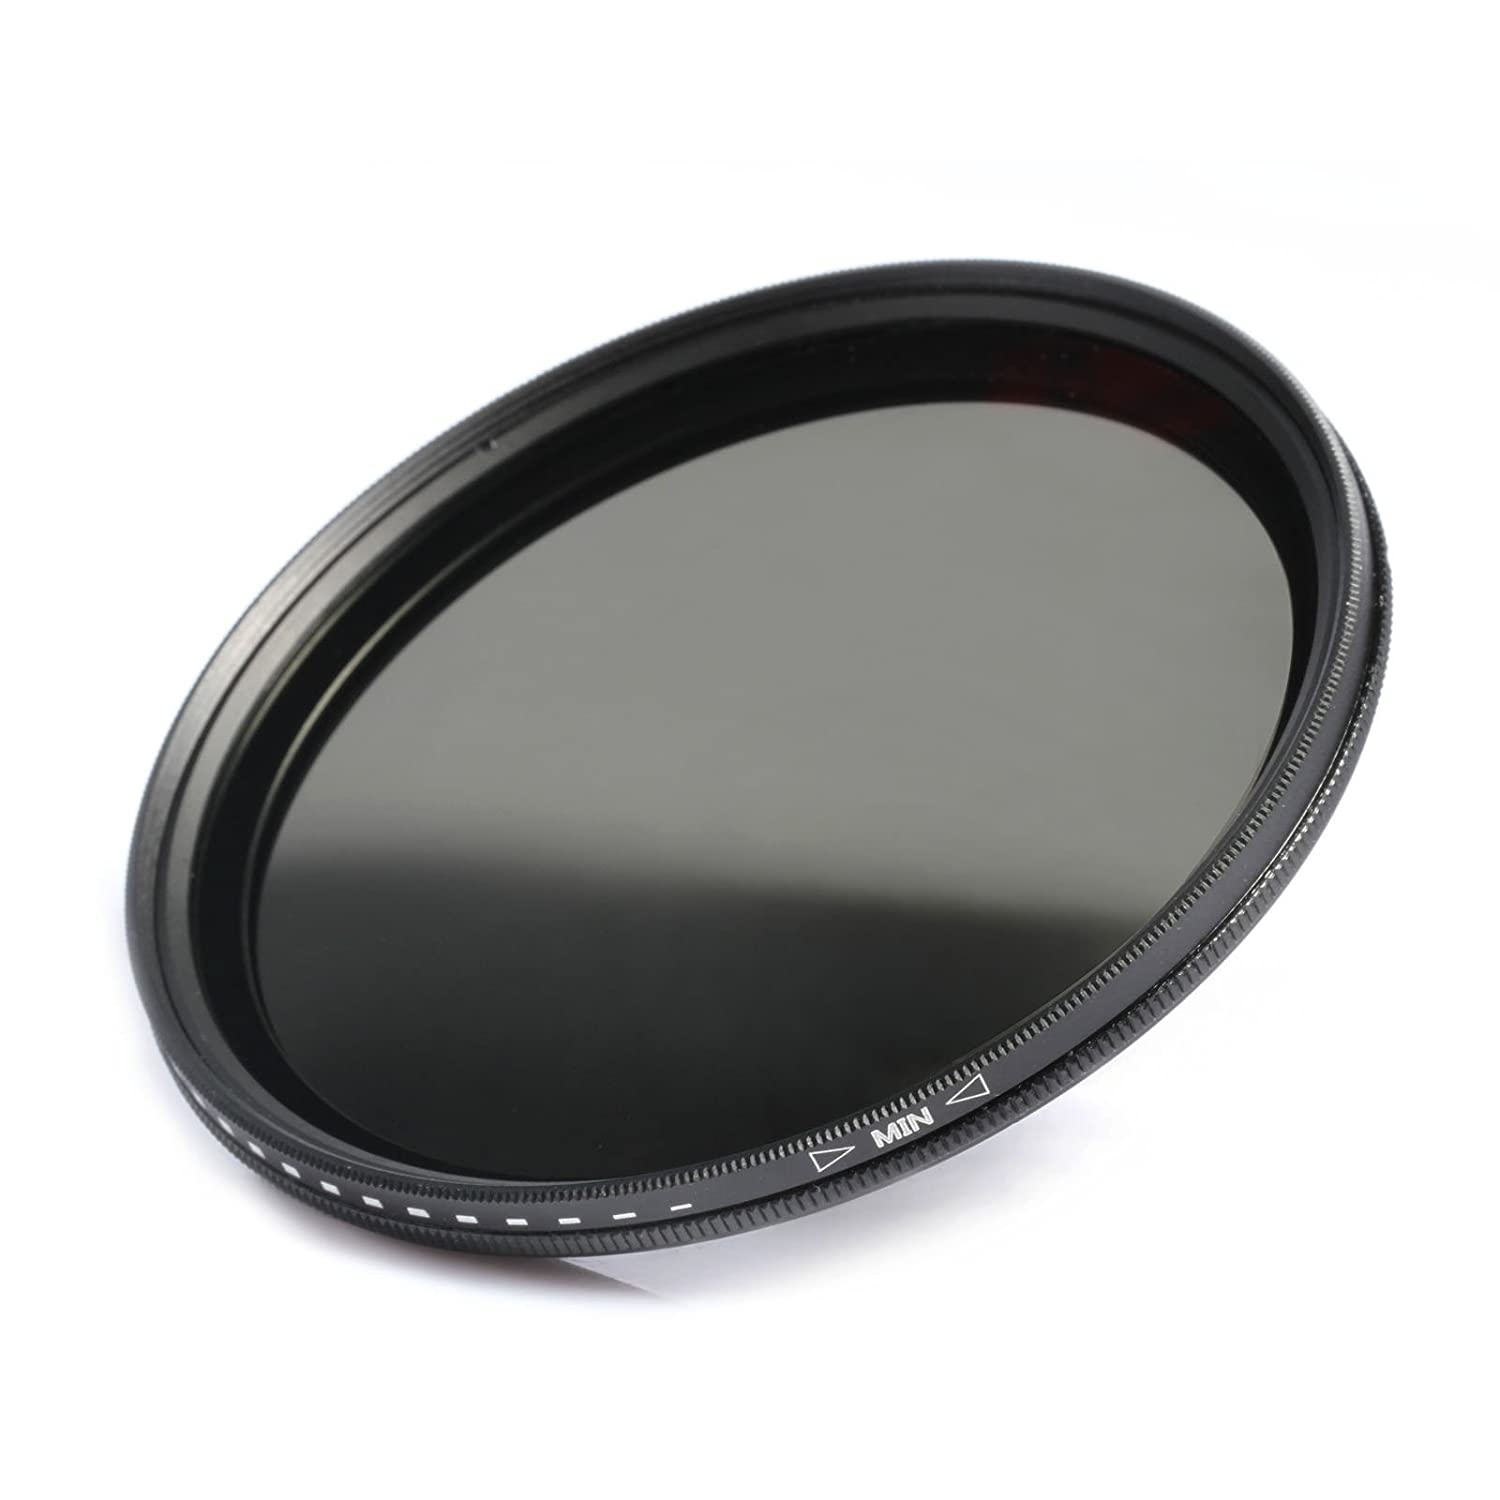 Cleaning Cloth K/&F Concept 55mm Slim HD Milti-Coated Variable Polarizing Fader ND Neutral Density Adjustable ND2 to ND400 Lens Filter for Digital Cameras 55mm Filter